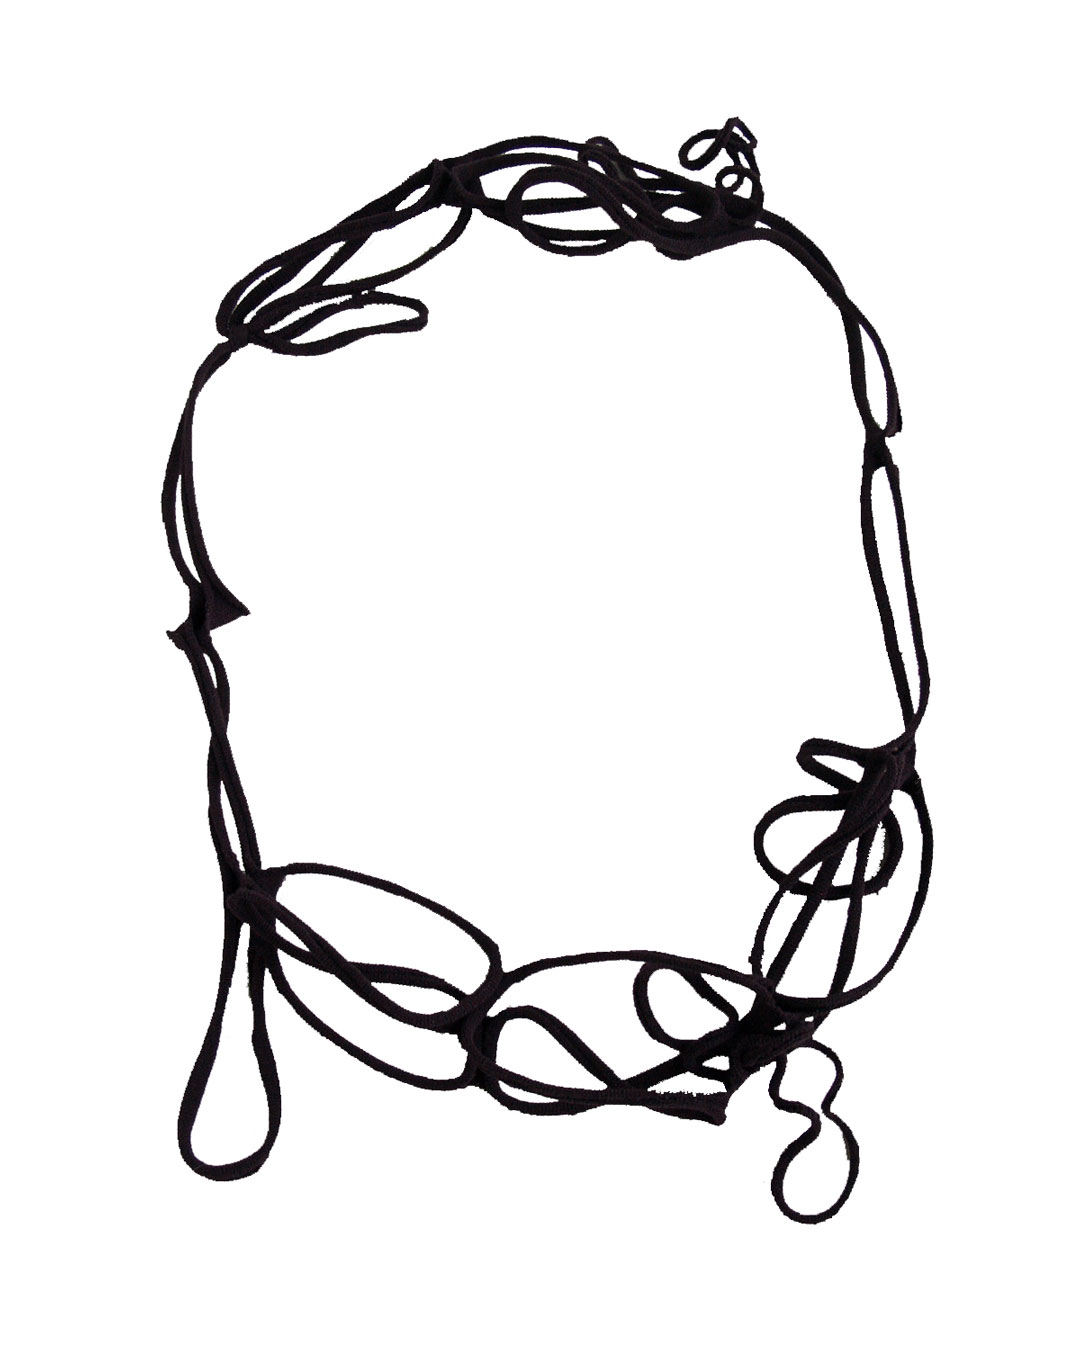 Mirei Takeuchi, untitled, 2008, necklace; nylon stockings, 470 x 37 x 6 mm, €185